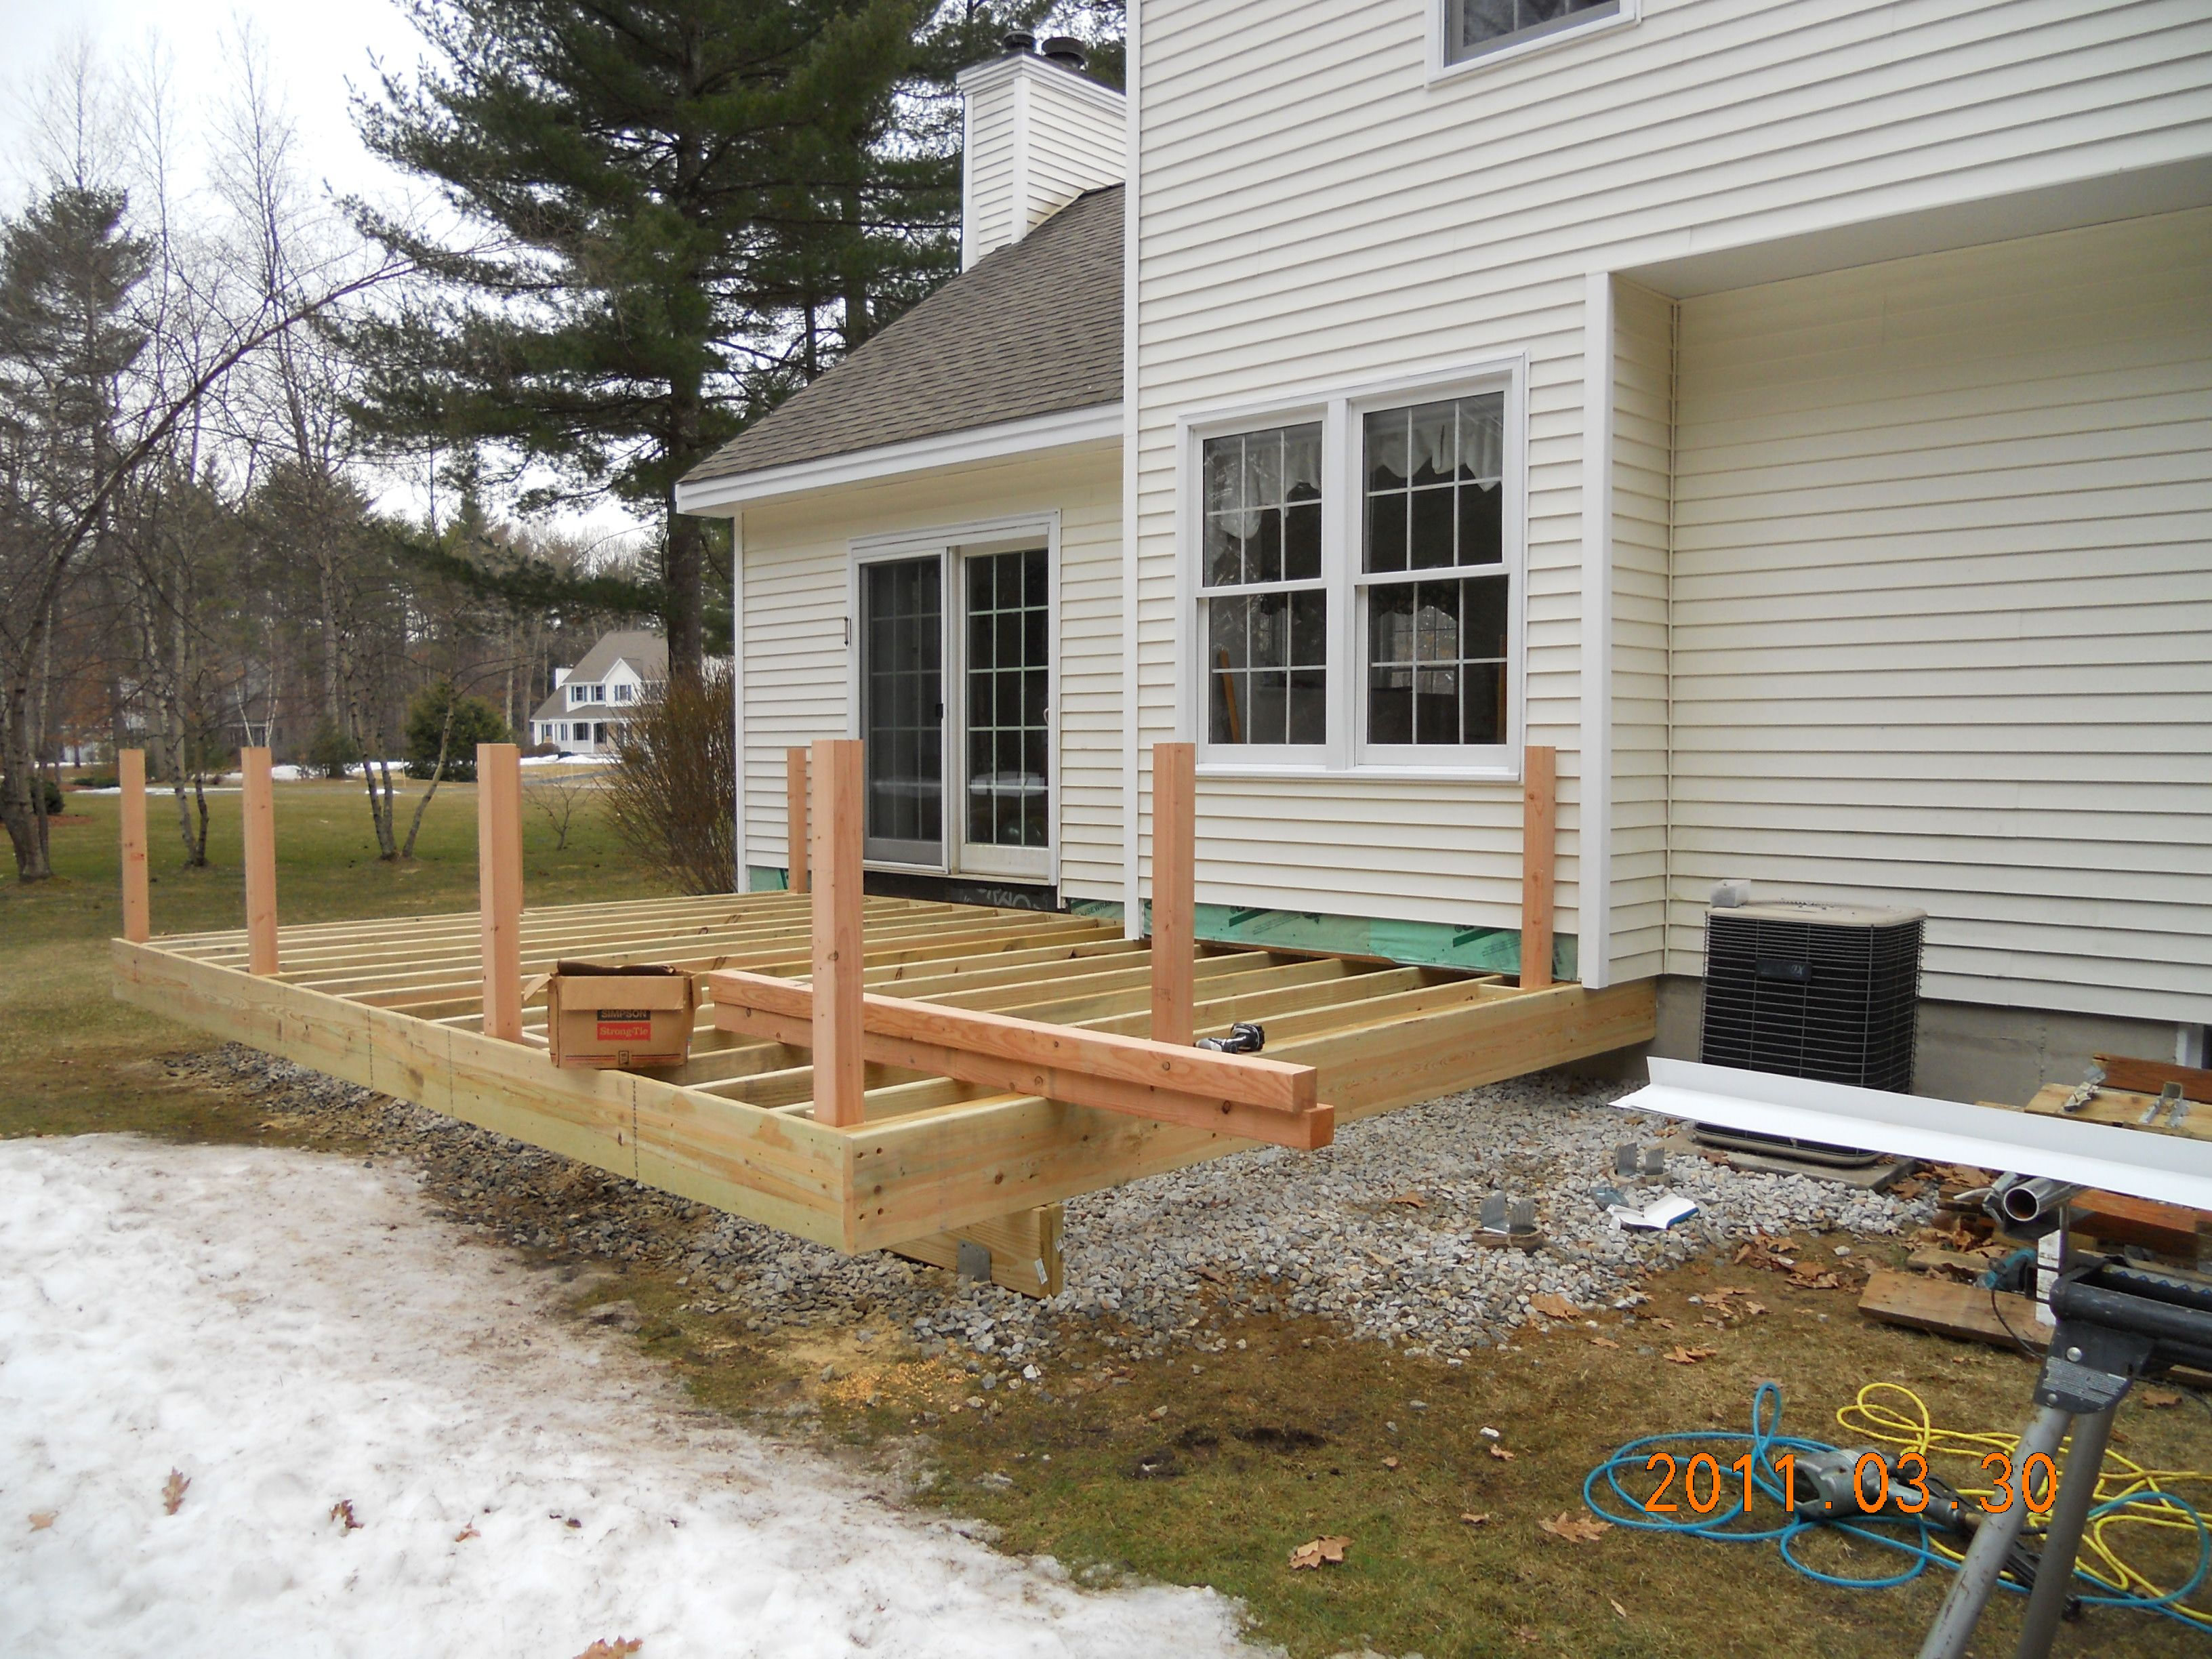 Attaching deck to house with siding - Find This Pin And More On Deck Deck Framing Is Complete